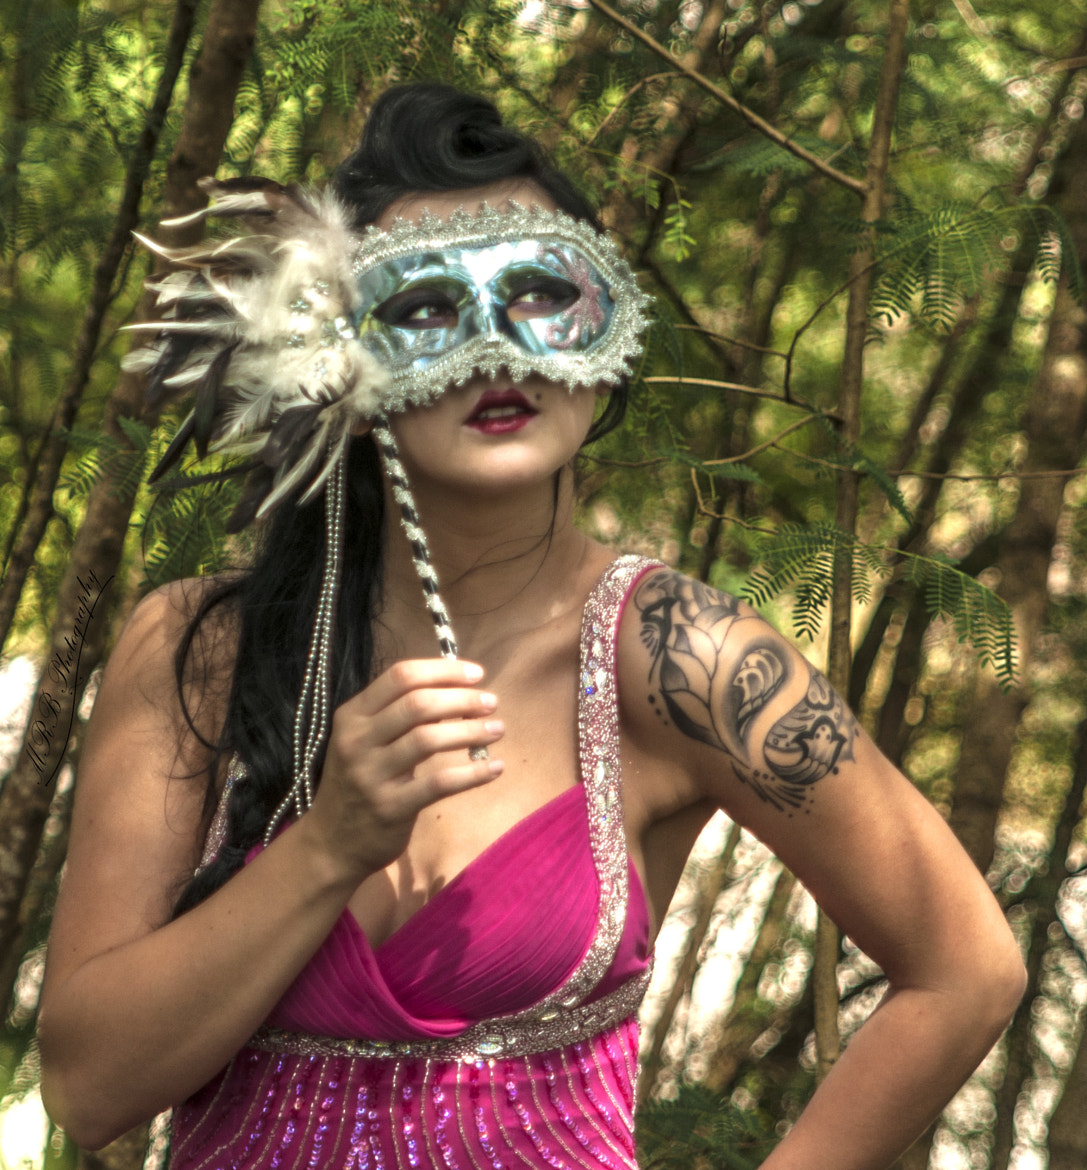 Photograph Masked beauty. by Michael Barbier on 500px